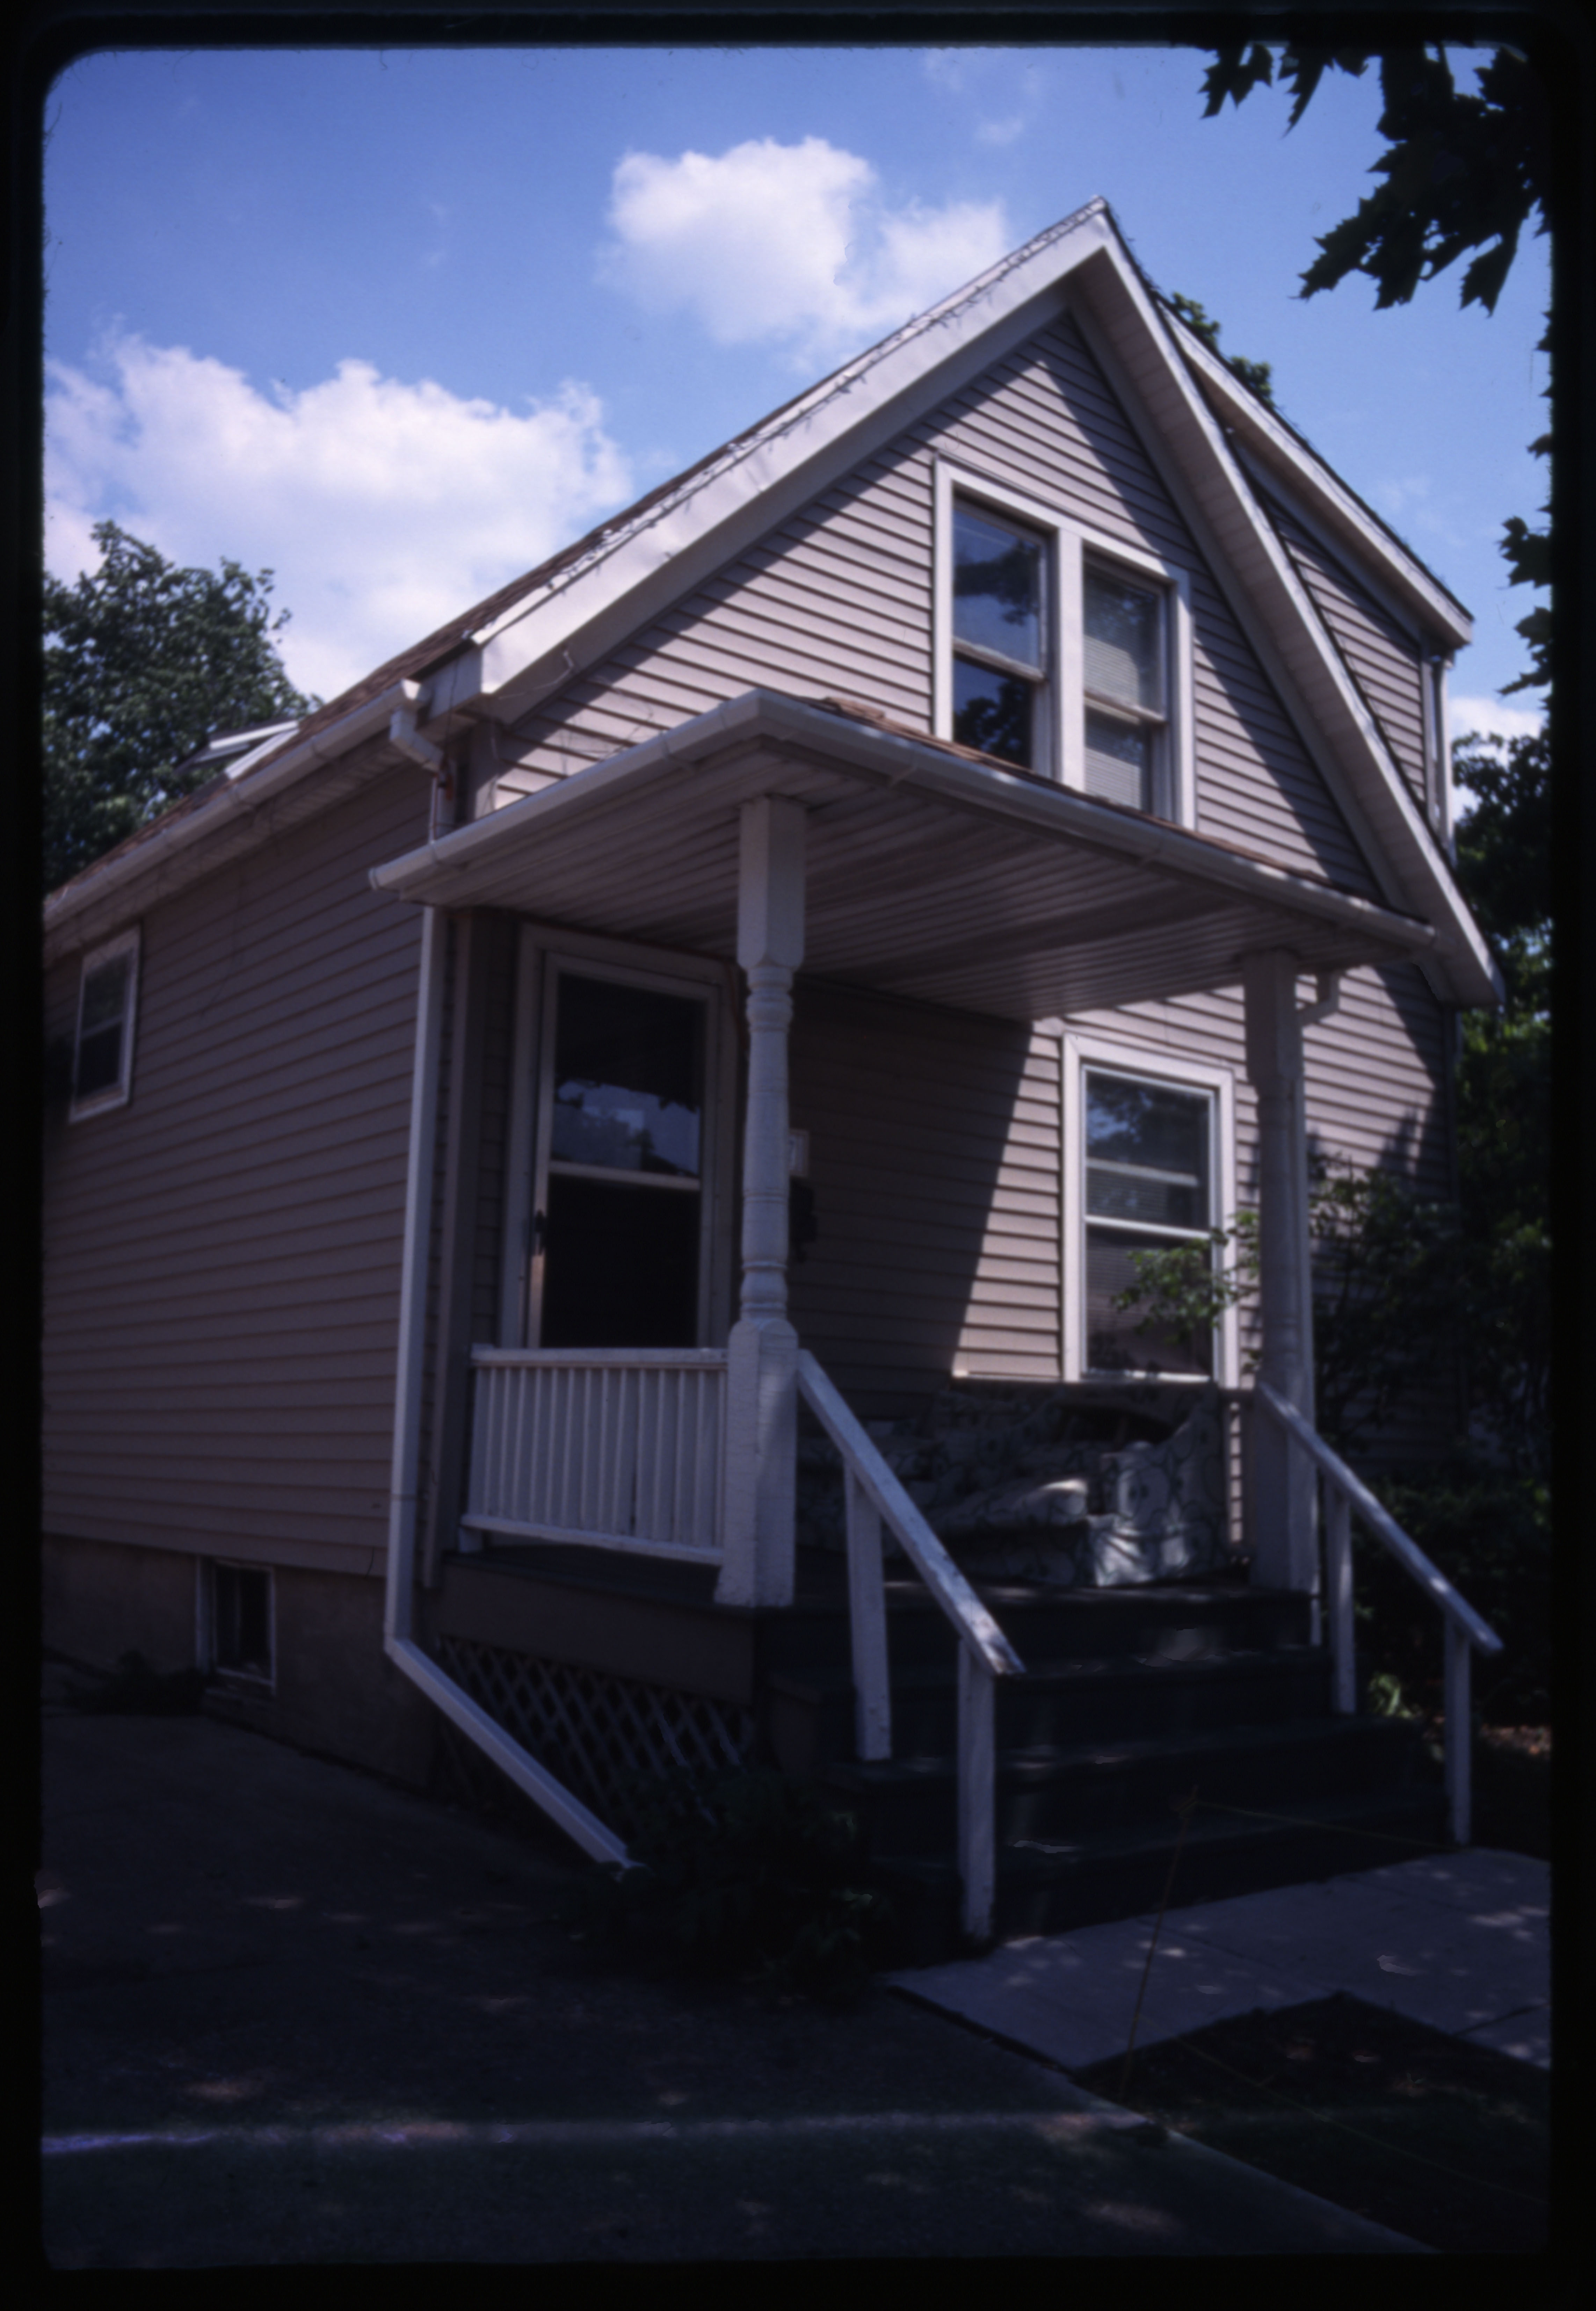 937 S Division St, 2000 image